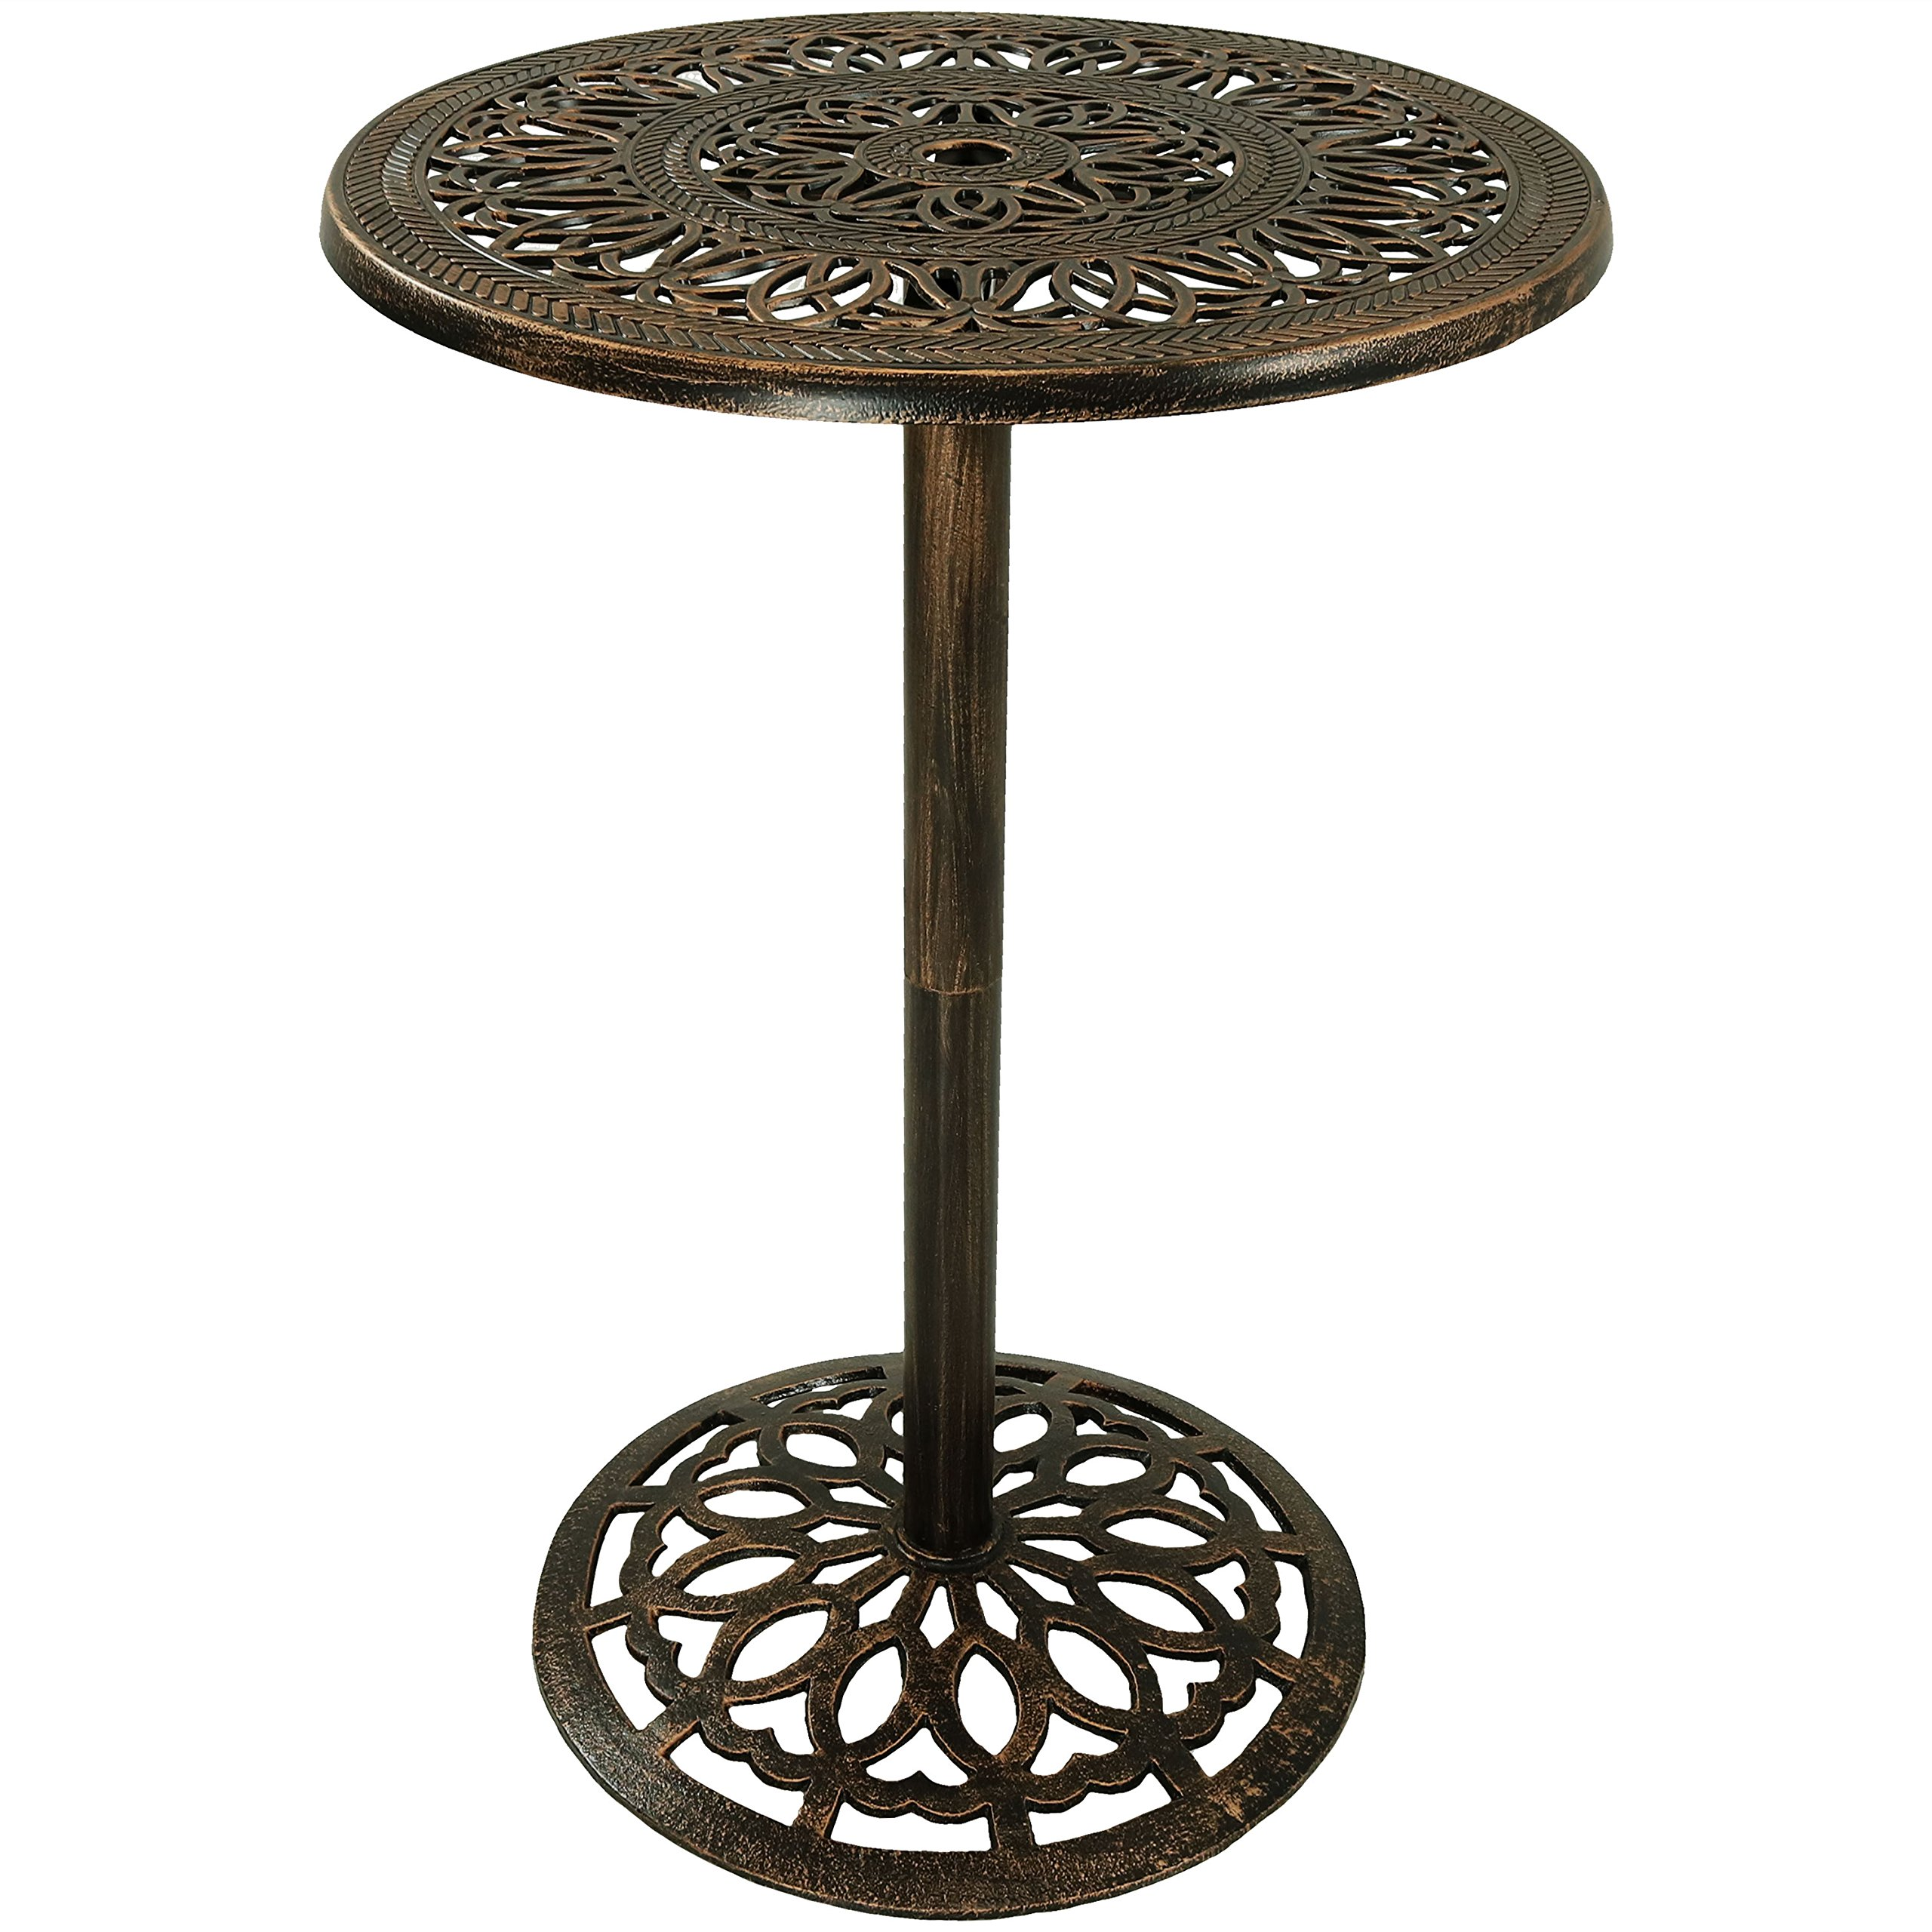 Sunnydaze Bar Height Patio Table, Outdoor Round High Top Pub Table, Durable Cast Iron, 26 Inch Diameter, 40 Inch Tall